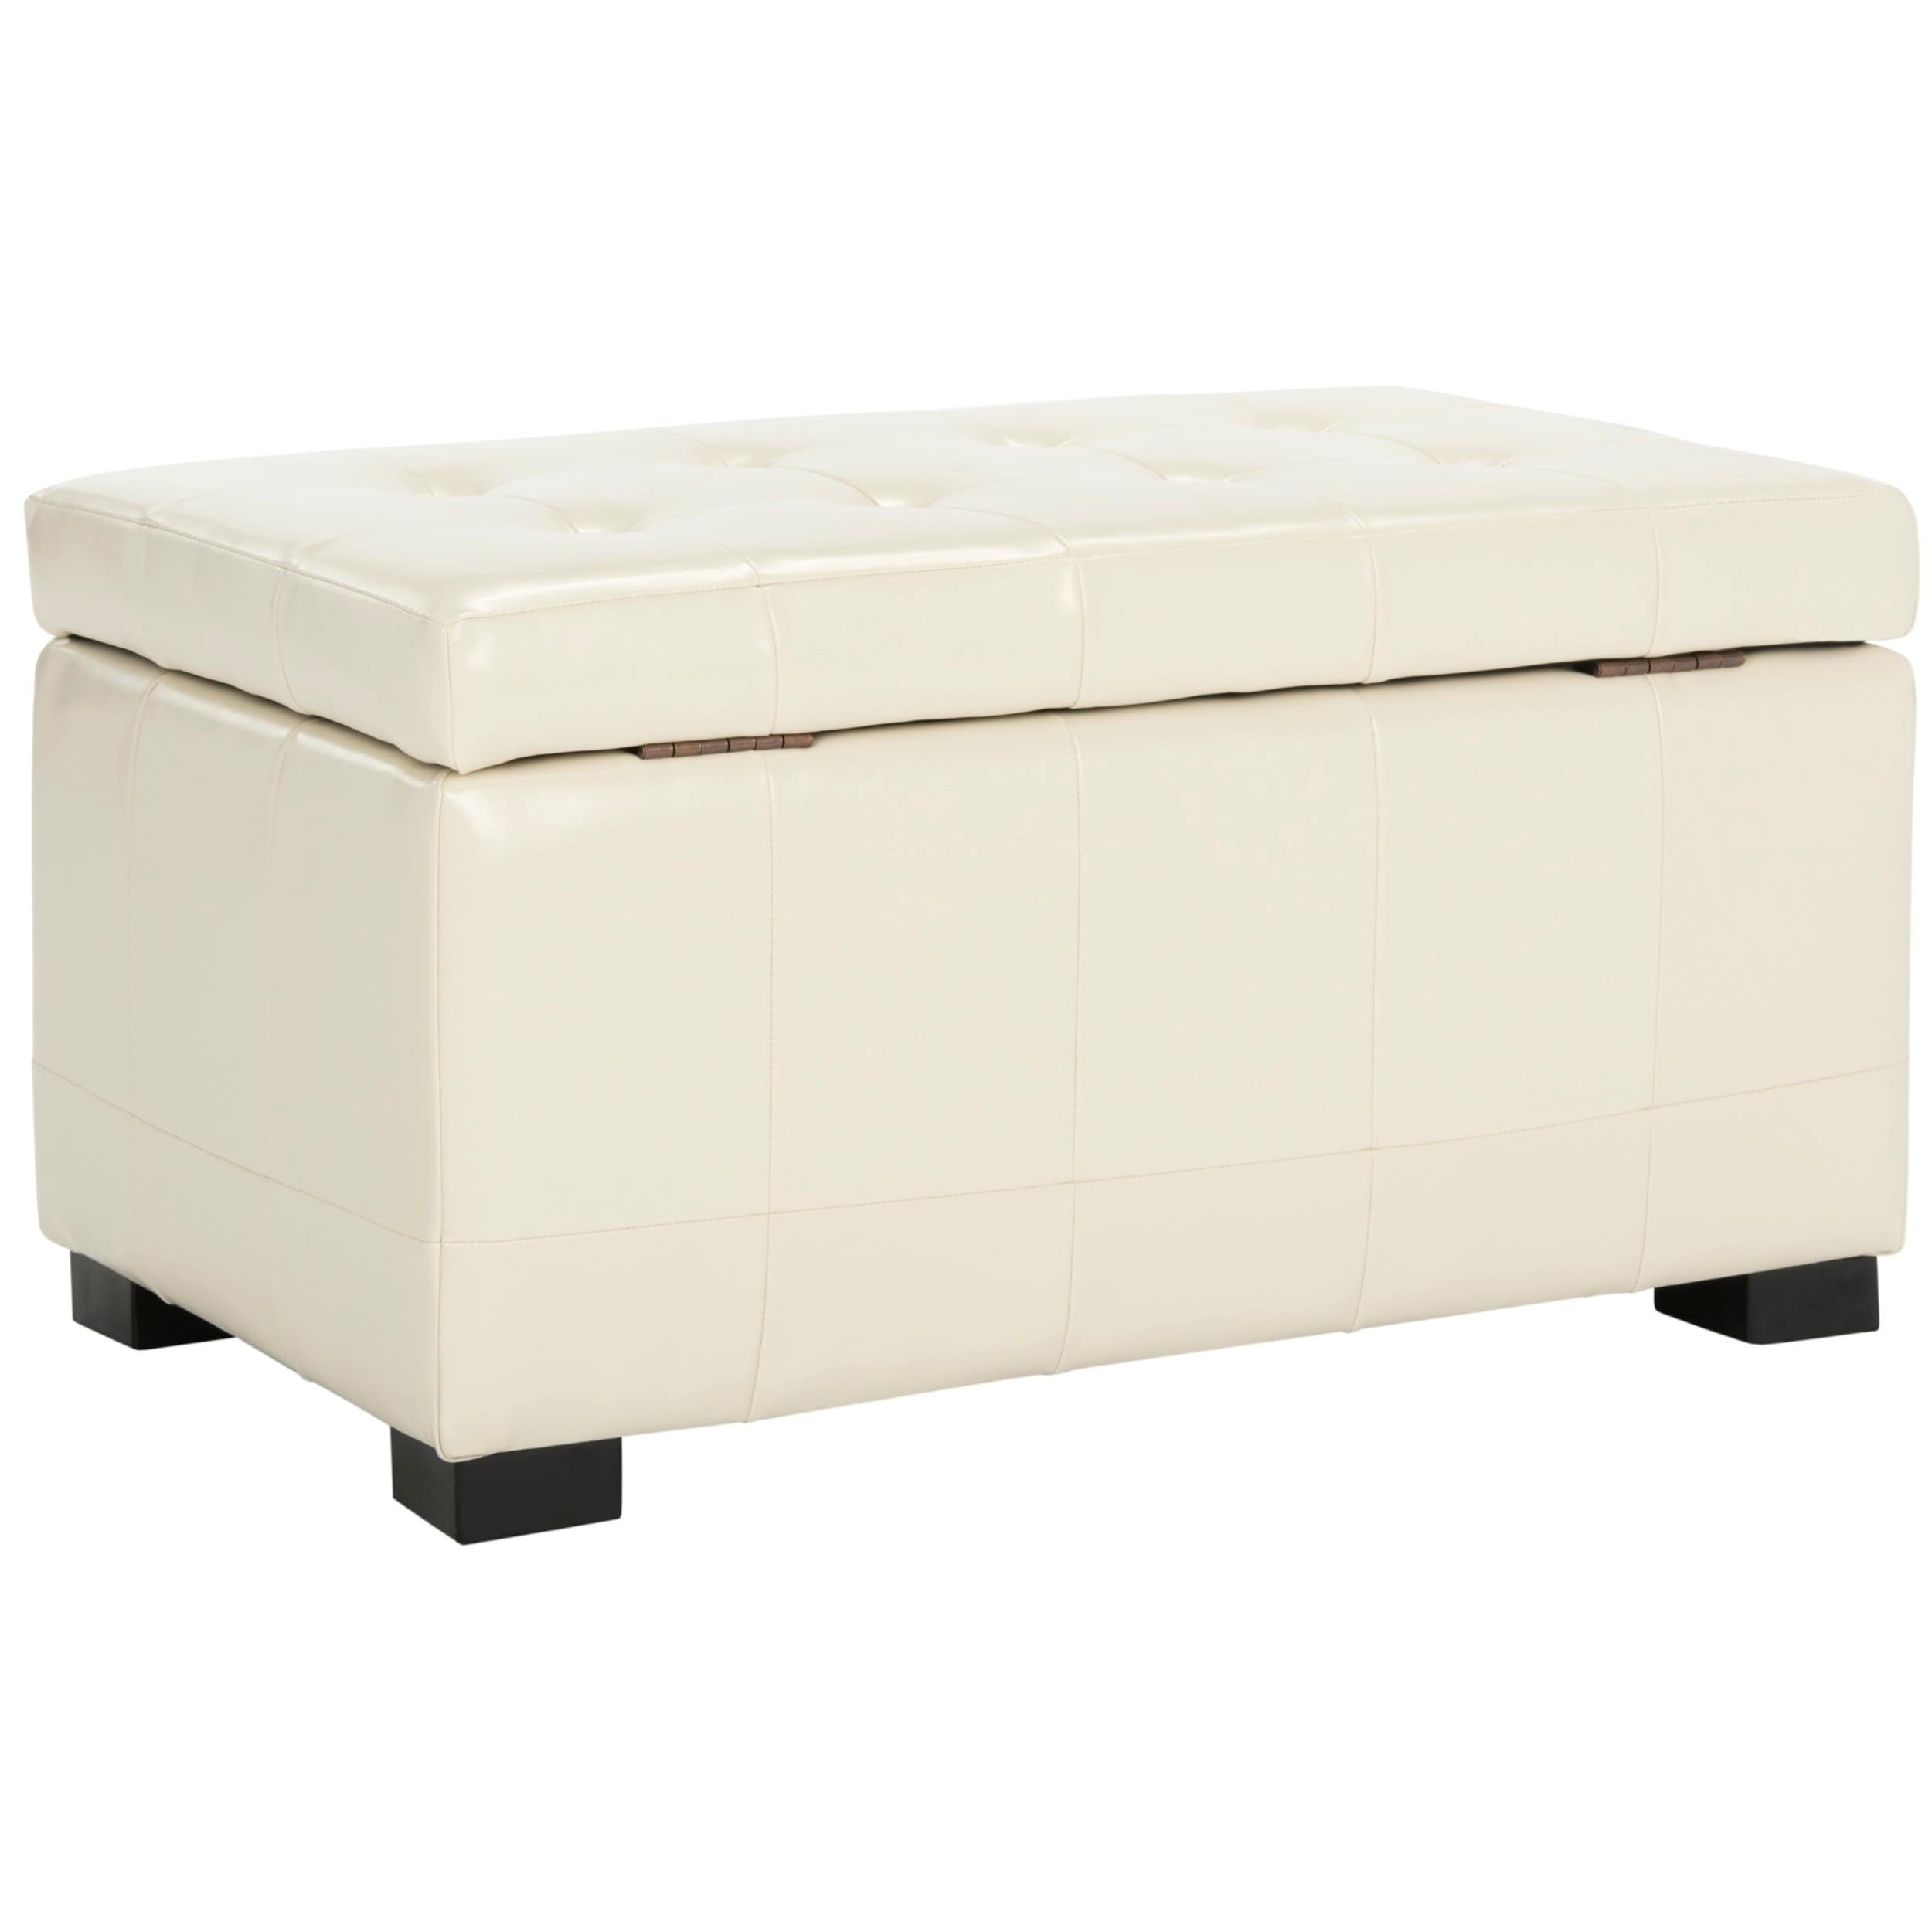 Safavieh Manhattan Off White Small Storage Bench Free Shipping Today 4107308